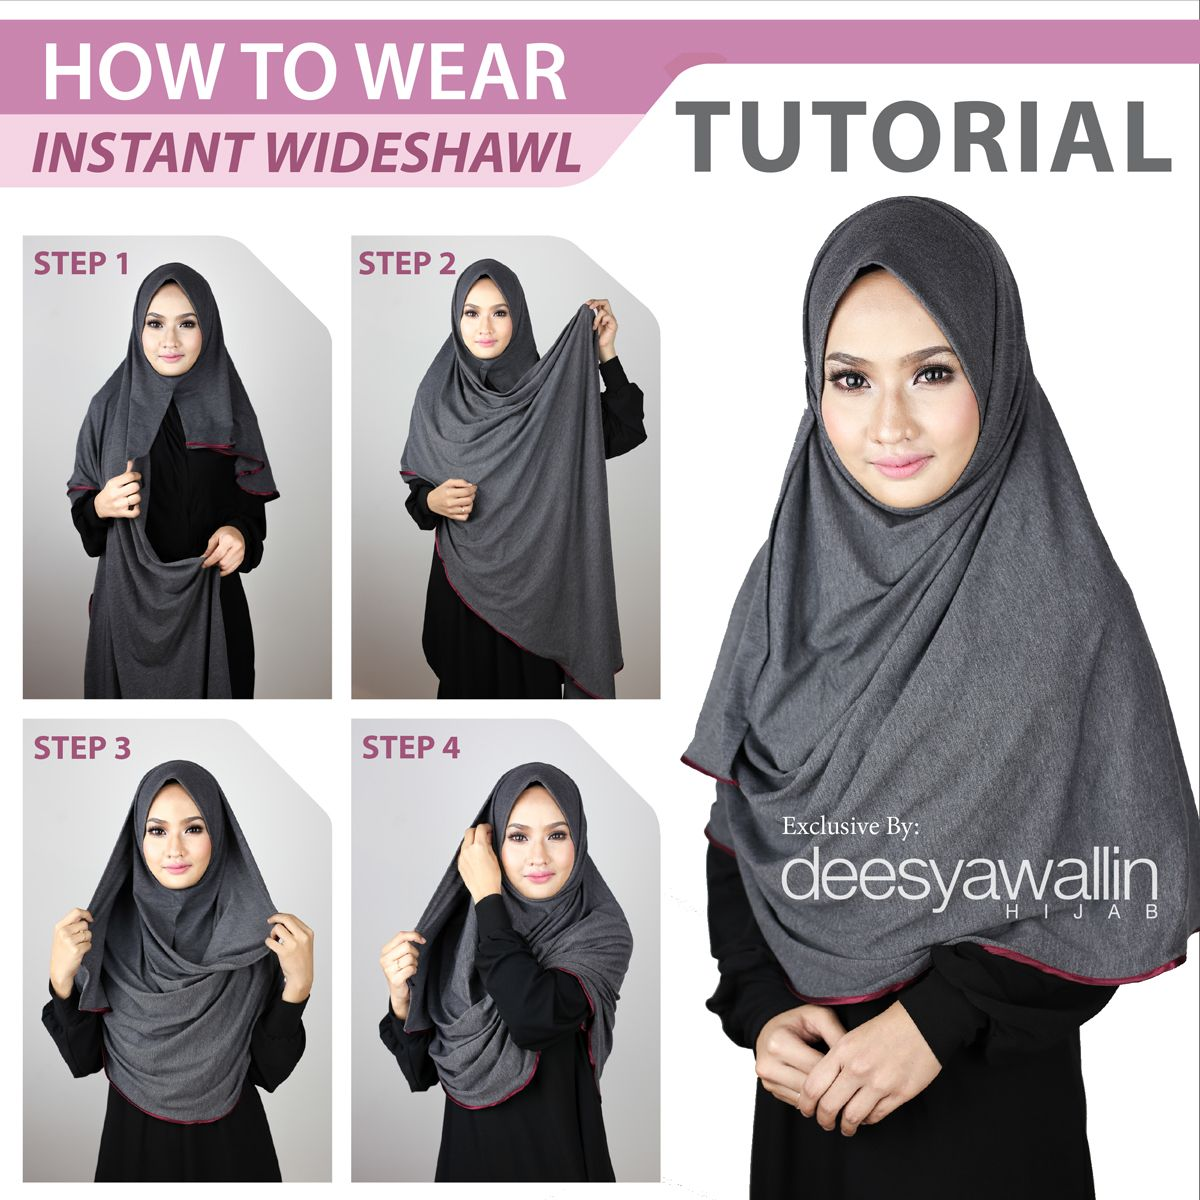 Tutorial Chiffon Wideshawl Facebook Closet Heart Official